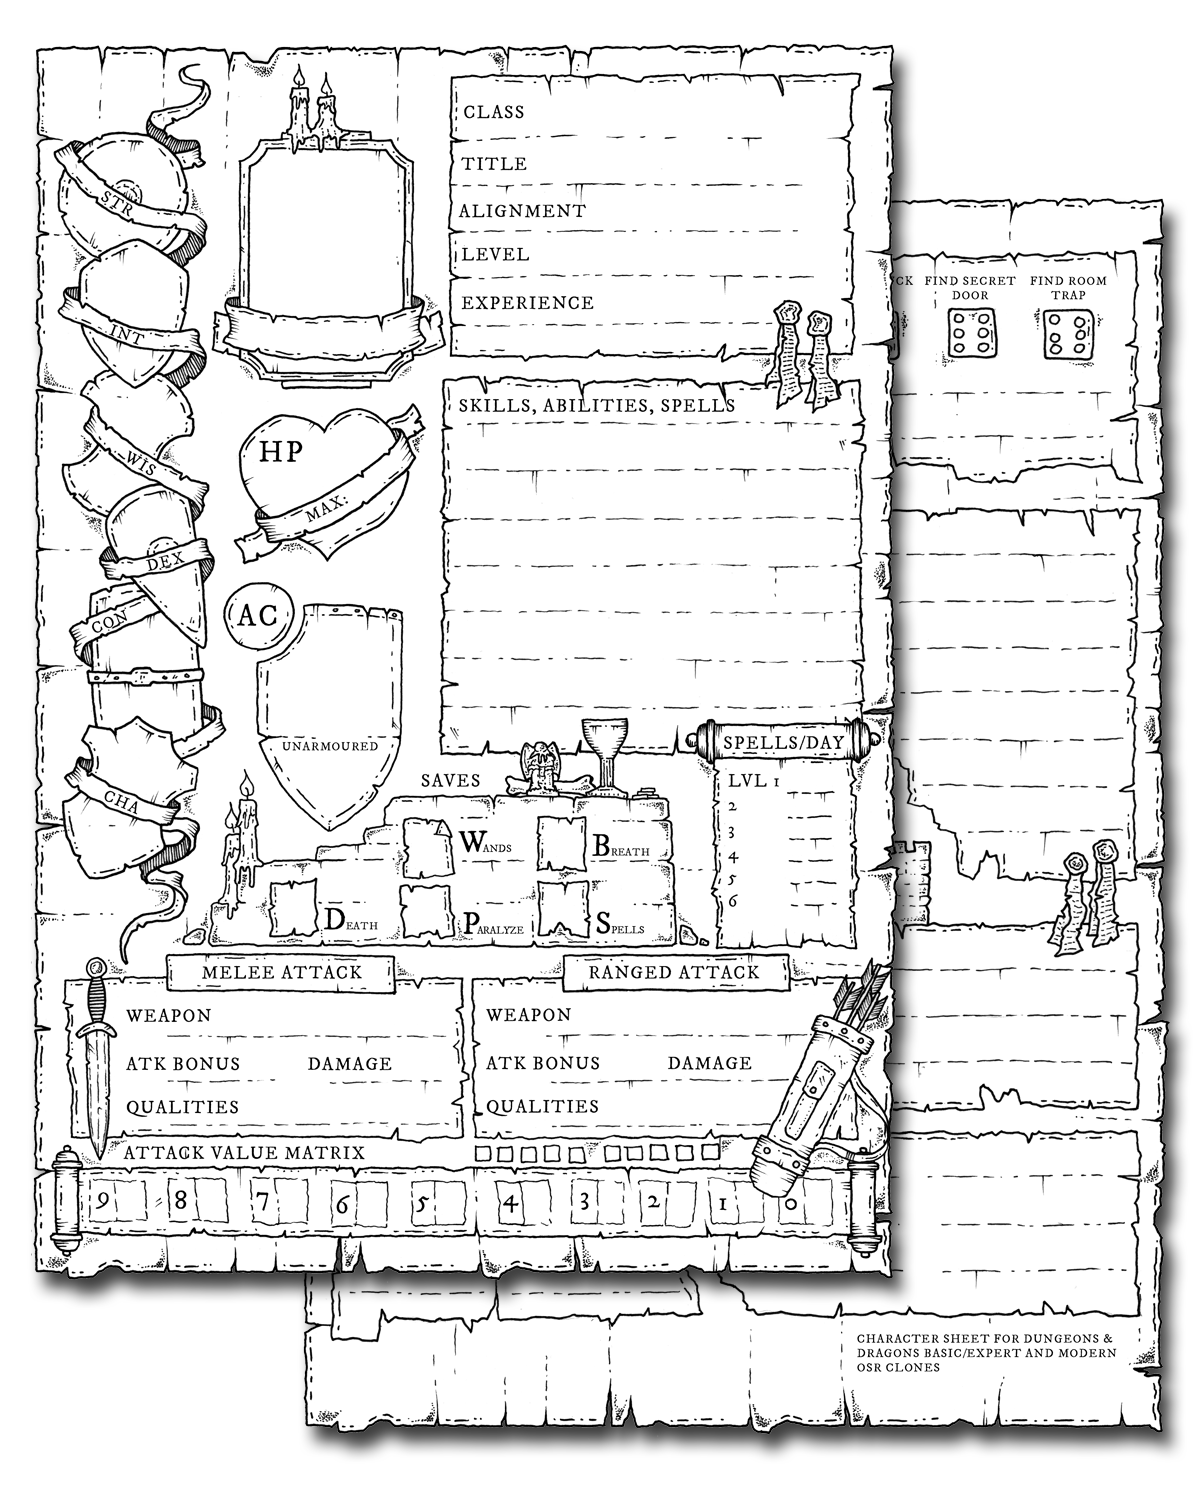 Hand drawn character sheet for D&D Basic/Expert